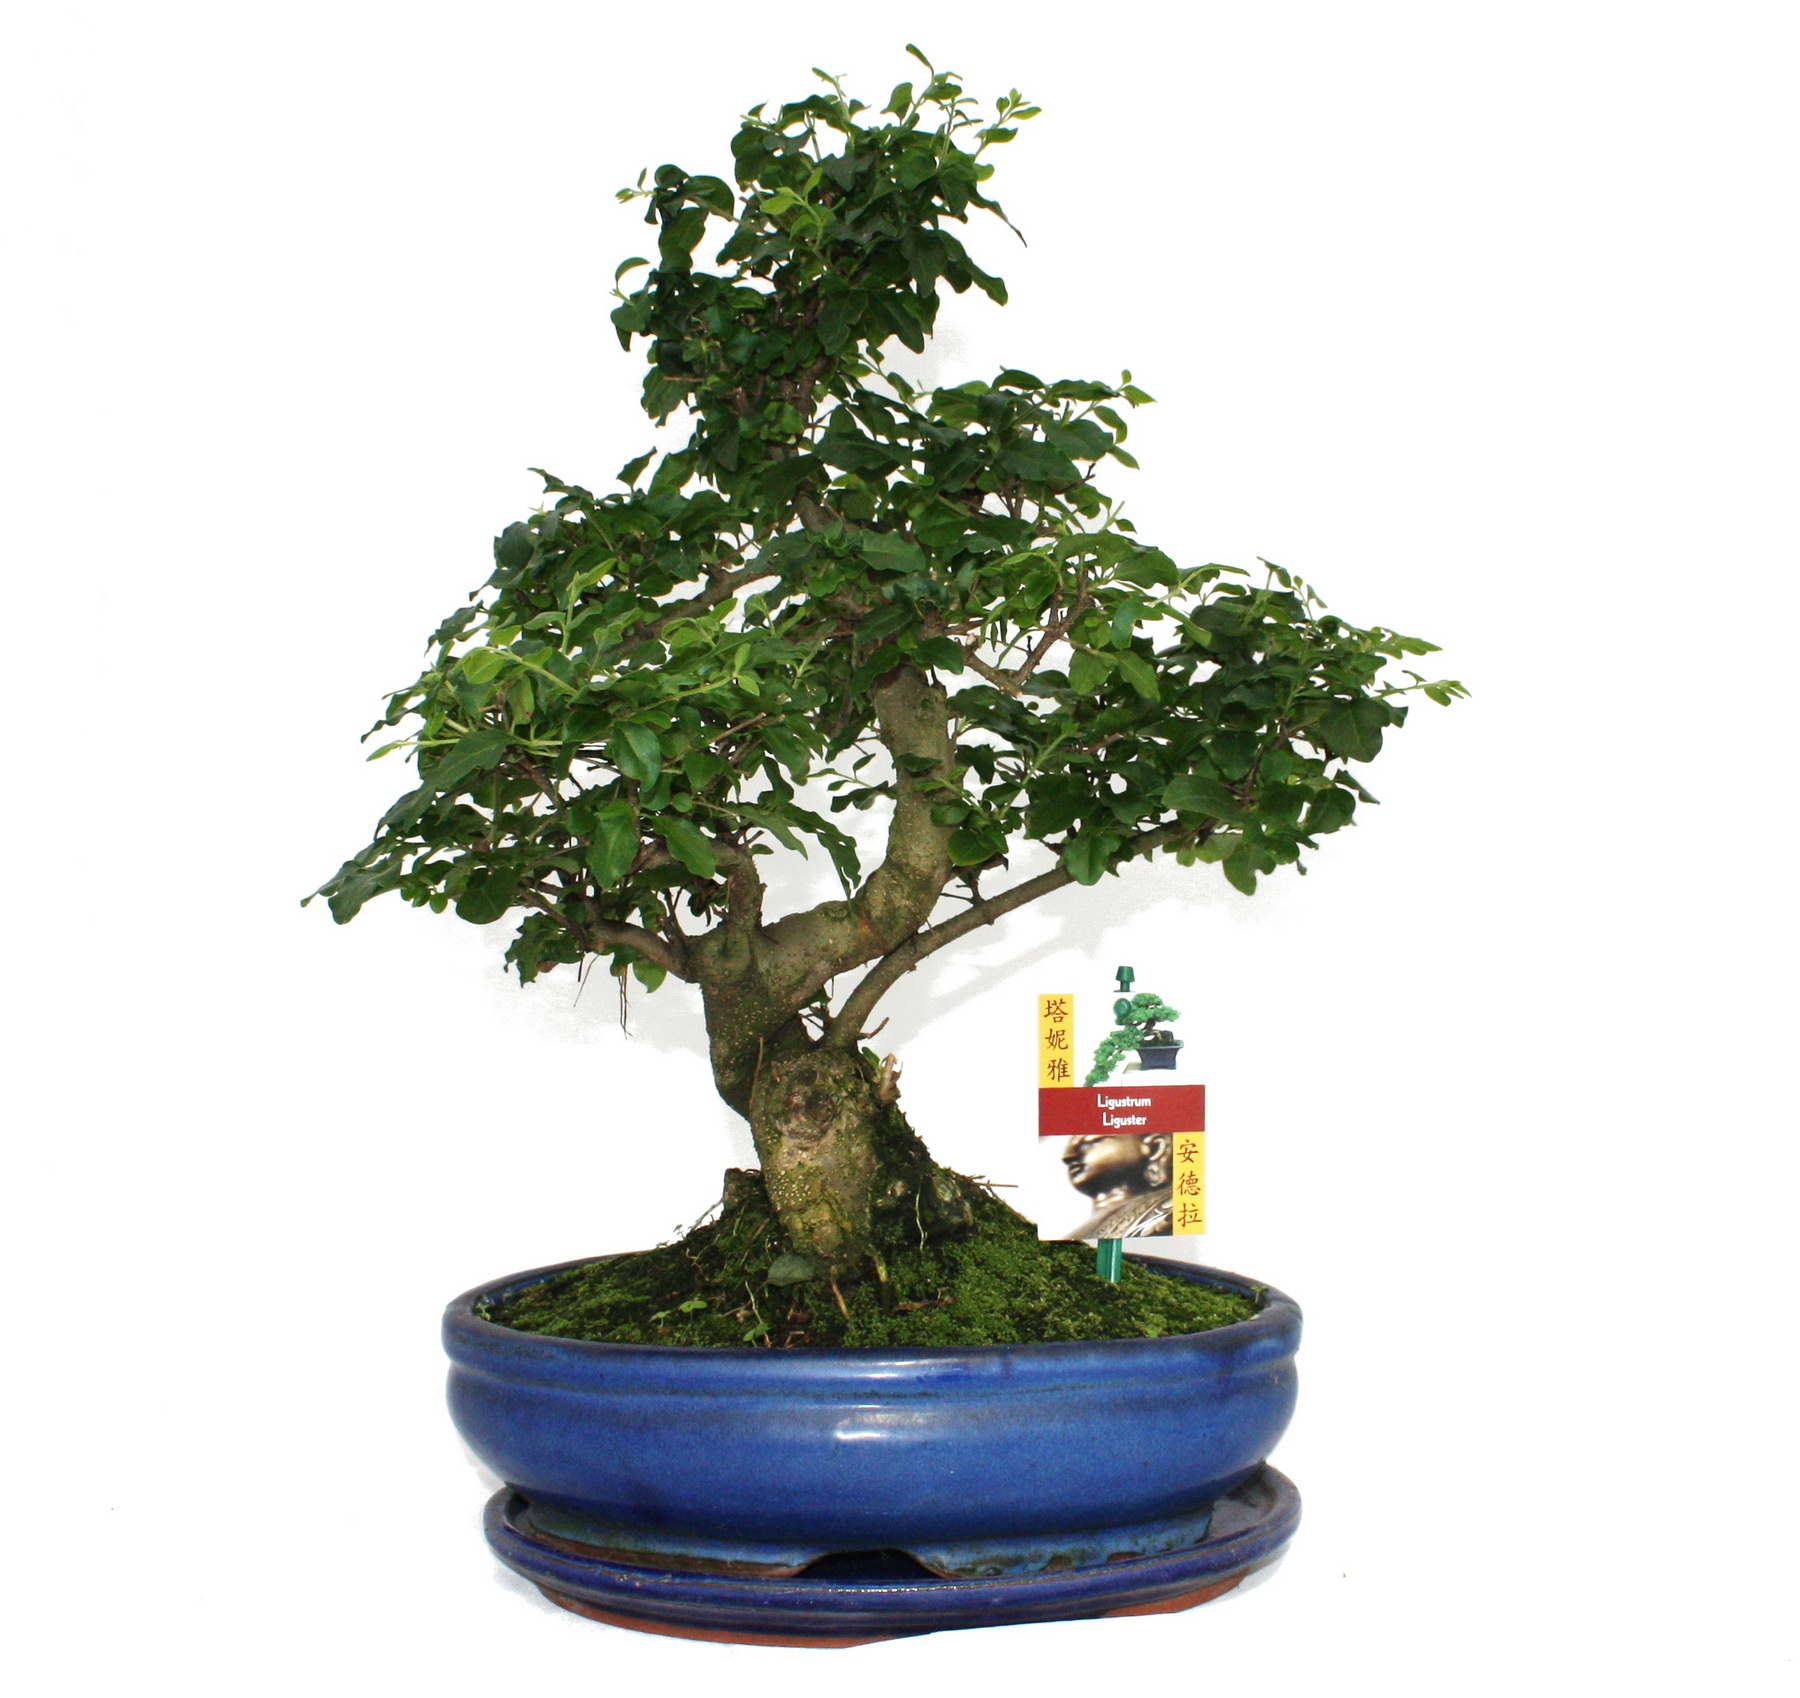 bonsai chinesischer liguster ligustrum sinensis ca 10 jahre ebay. Black Bedroom Furniture Sets. Home Design Ideas